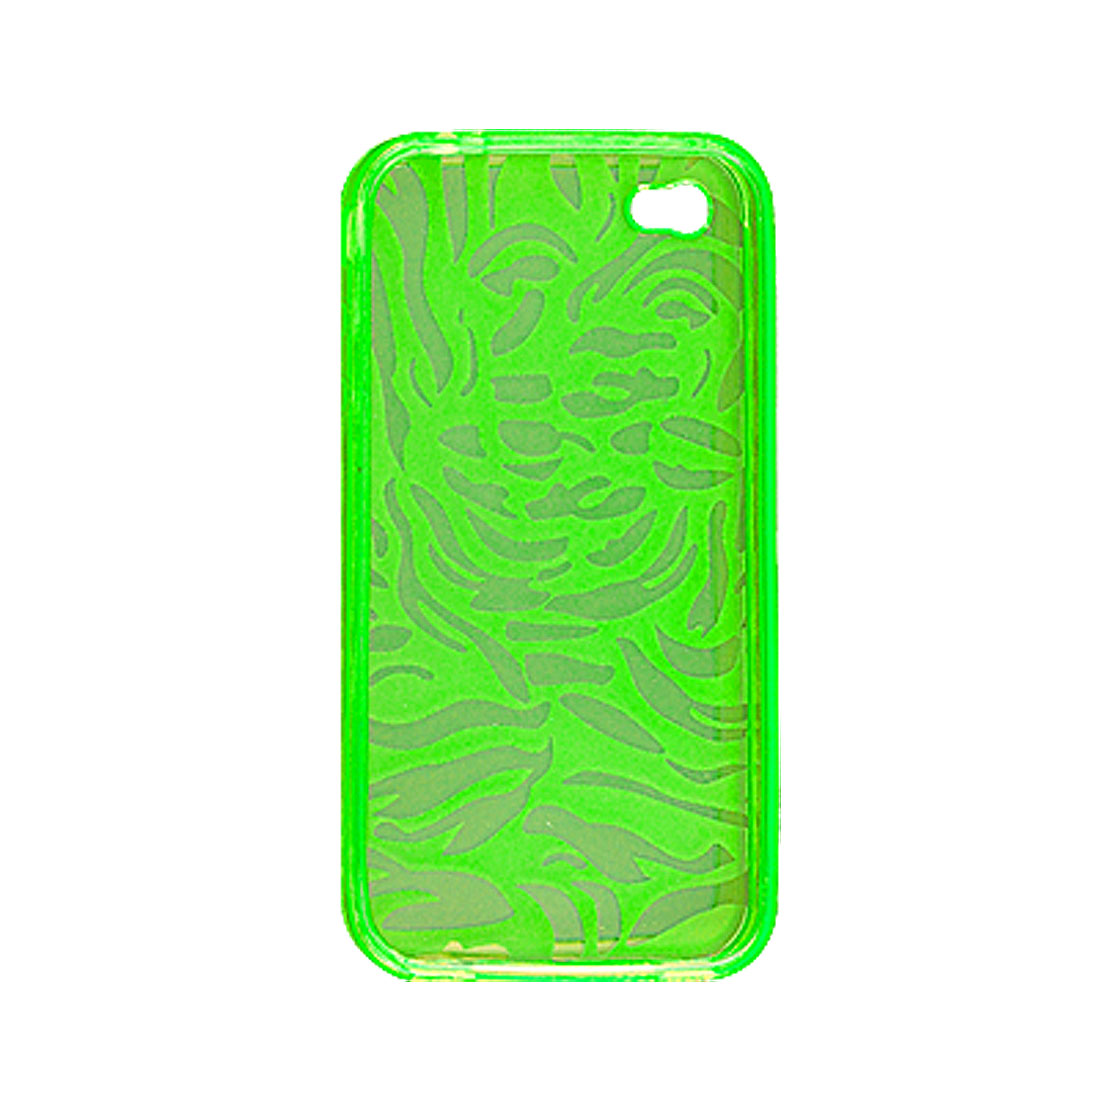 Green Soft Plastic Nonslip Inner Case for iPhone 4 4G